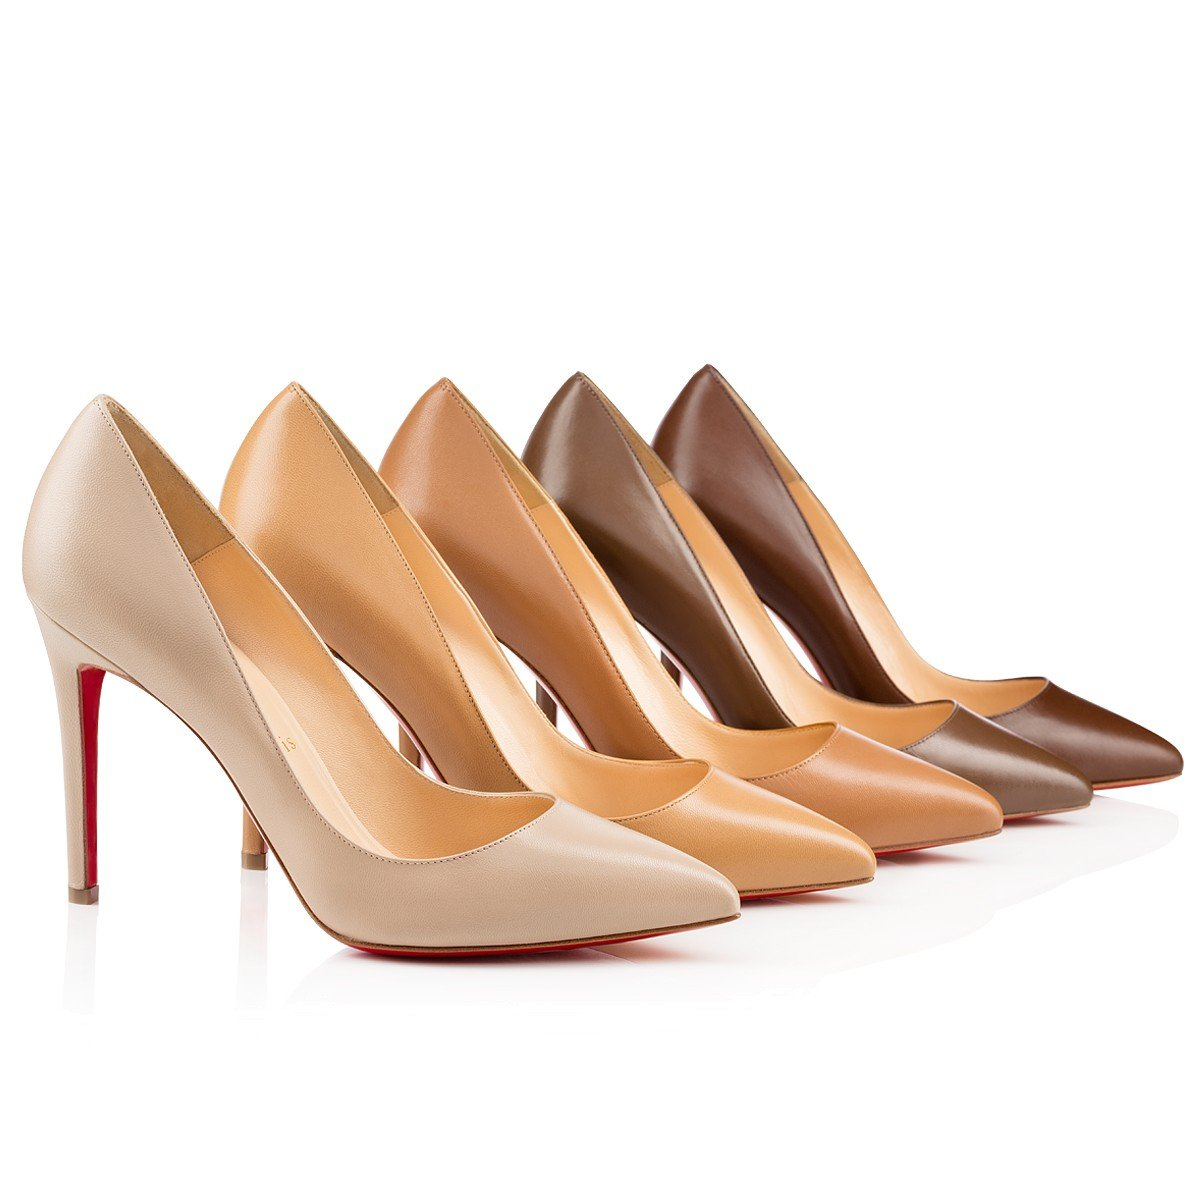 Five Shades of Nude de Christian Louboutin